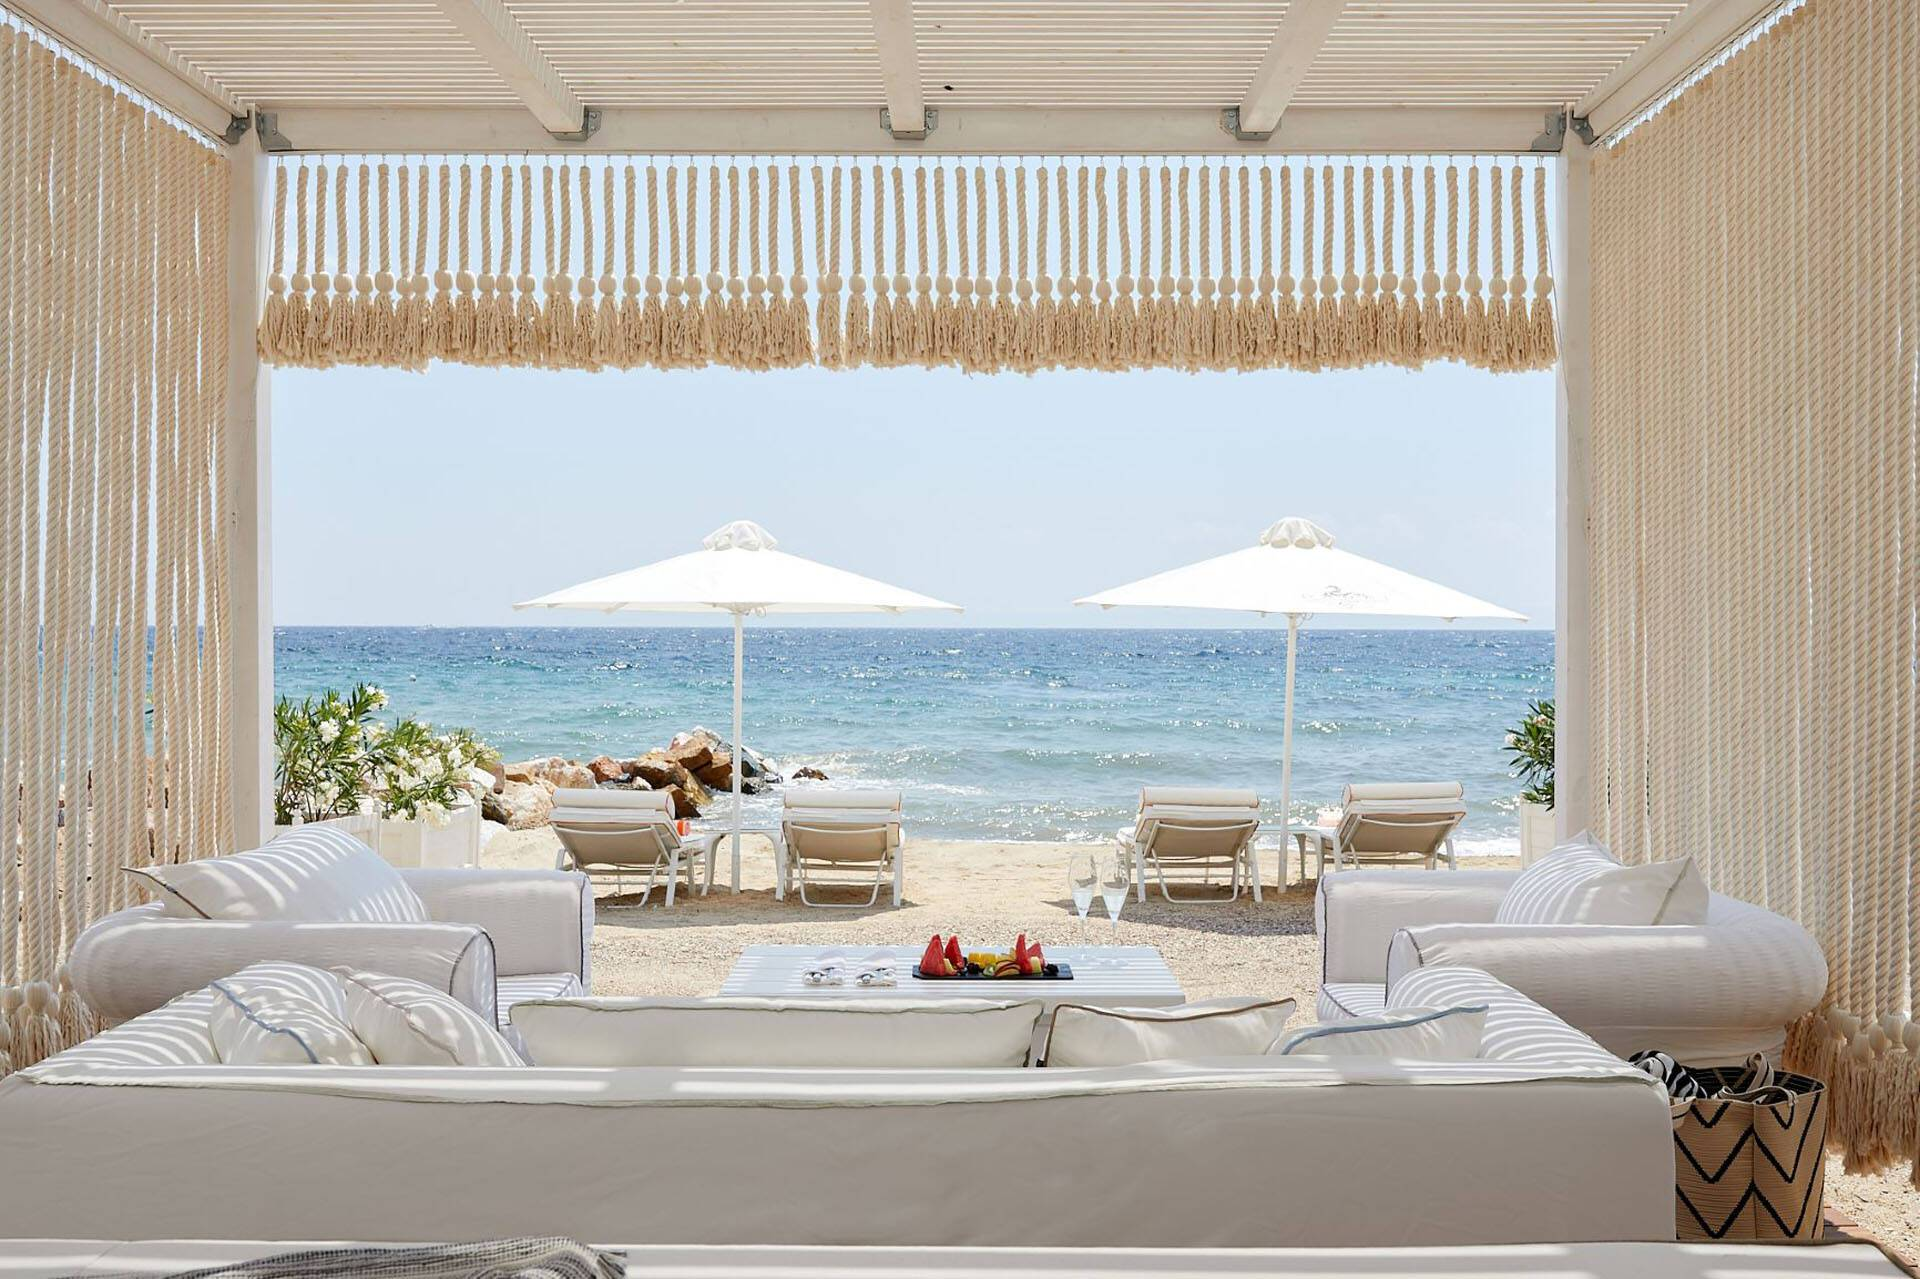 Danai Thessalonique Grece Beach Cabana